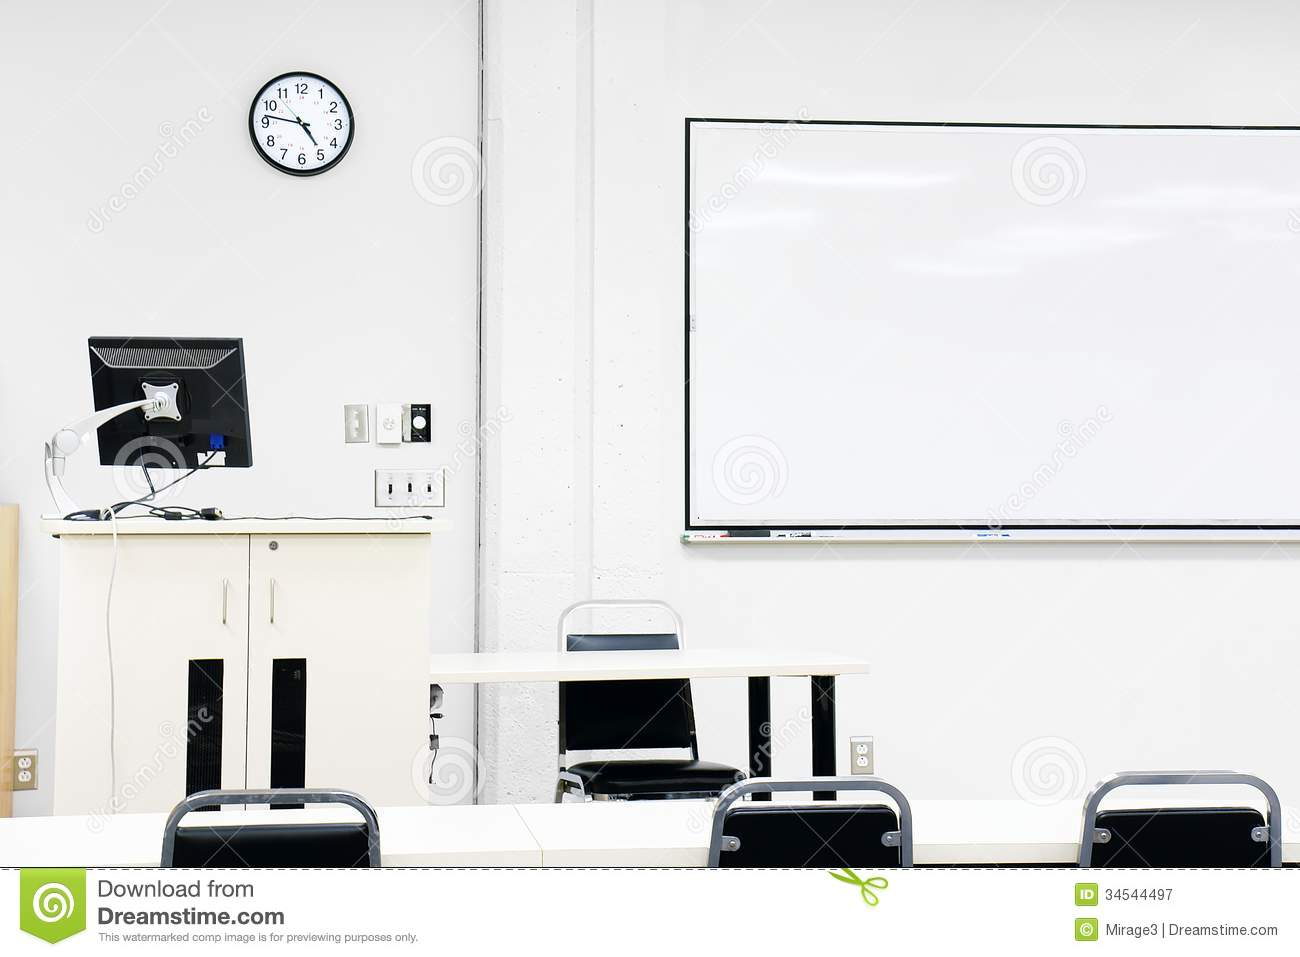 Modern Classroom Clipart ~ Sterile modern classroom royalty free stock photography